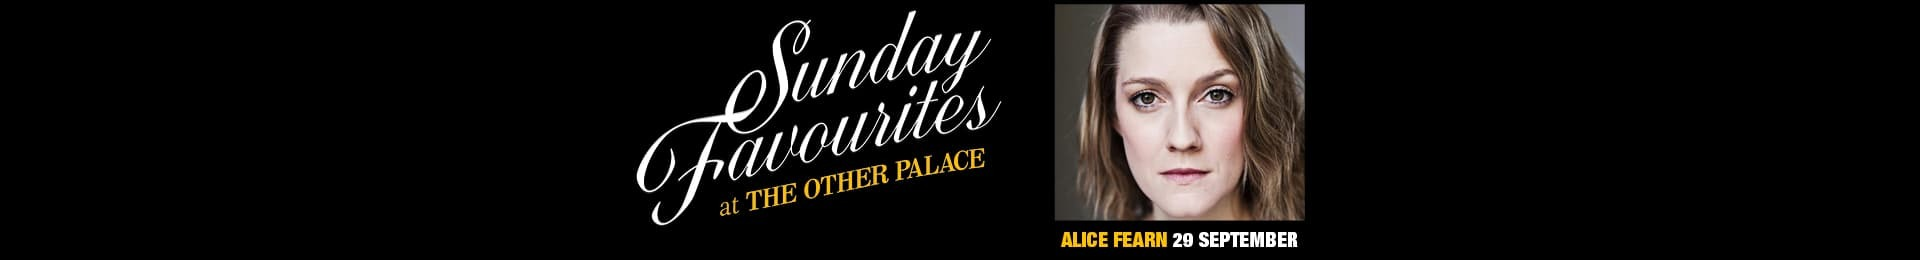 Sunday Favourites: Alice Fearn banner image